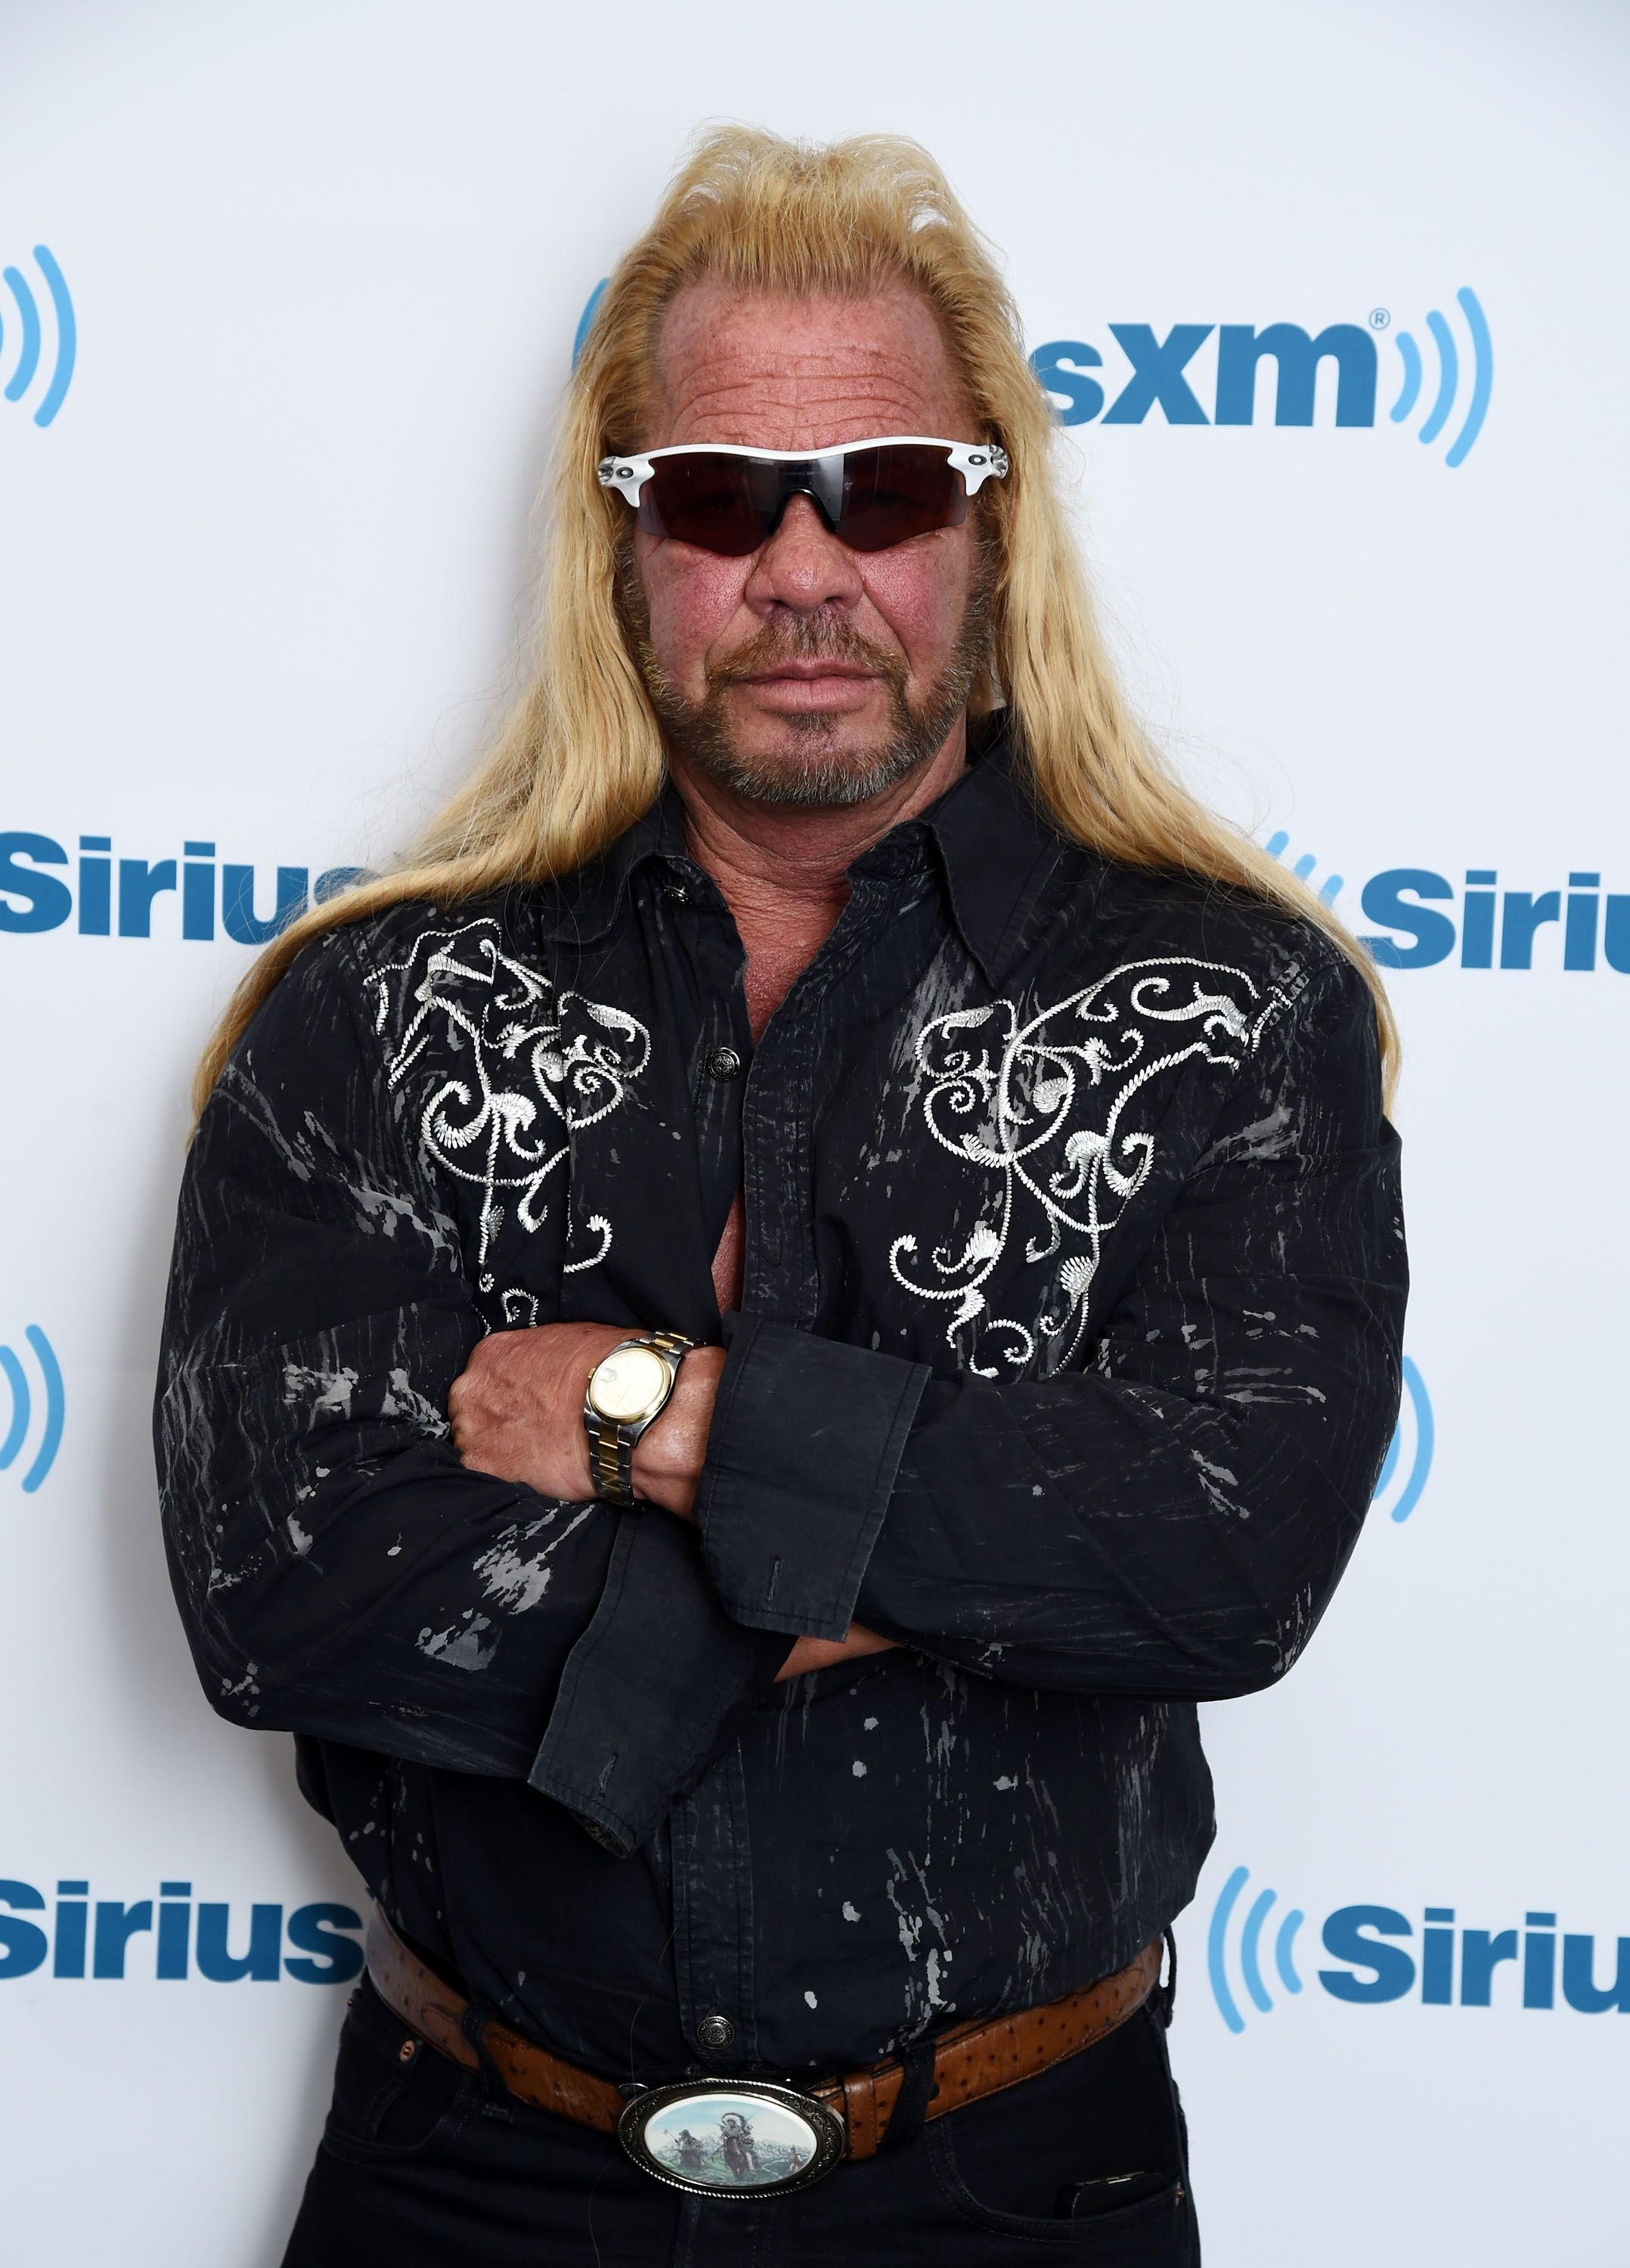 Dog the Bounty Hunter, Duane Chapman at the SiriusXM Studios on April 24, 2015 | Photo: Getty Images